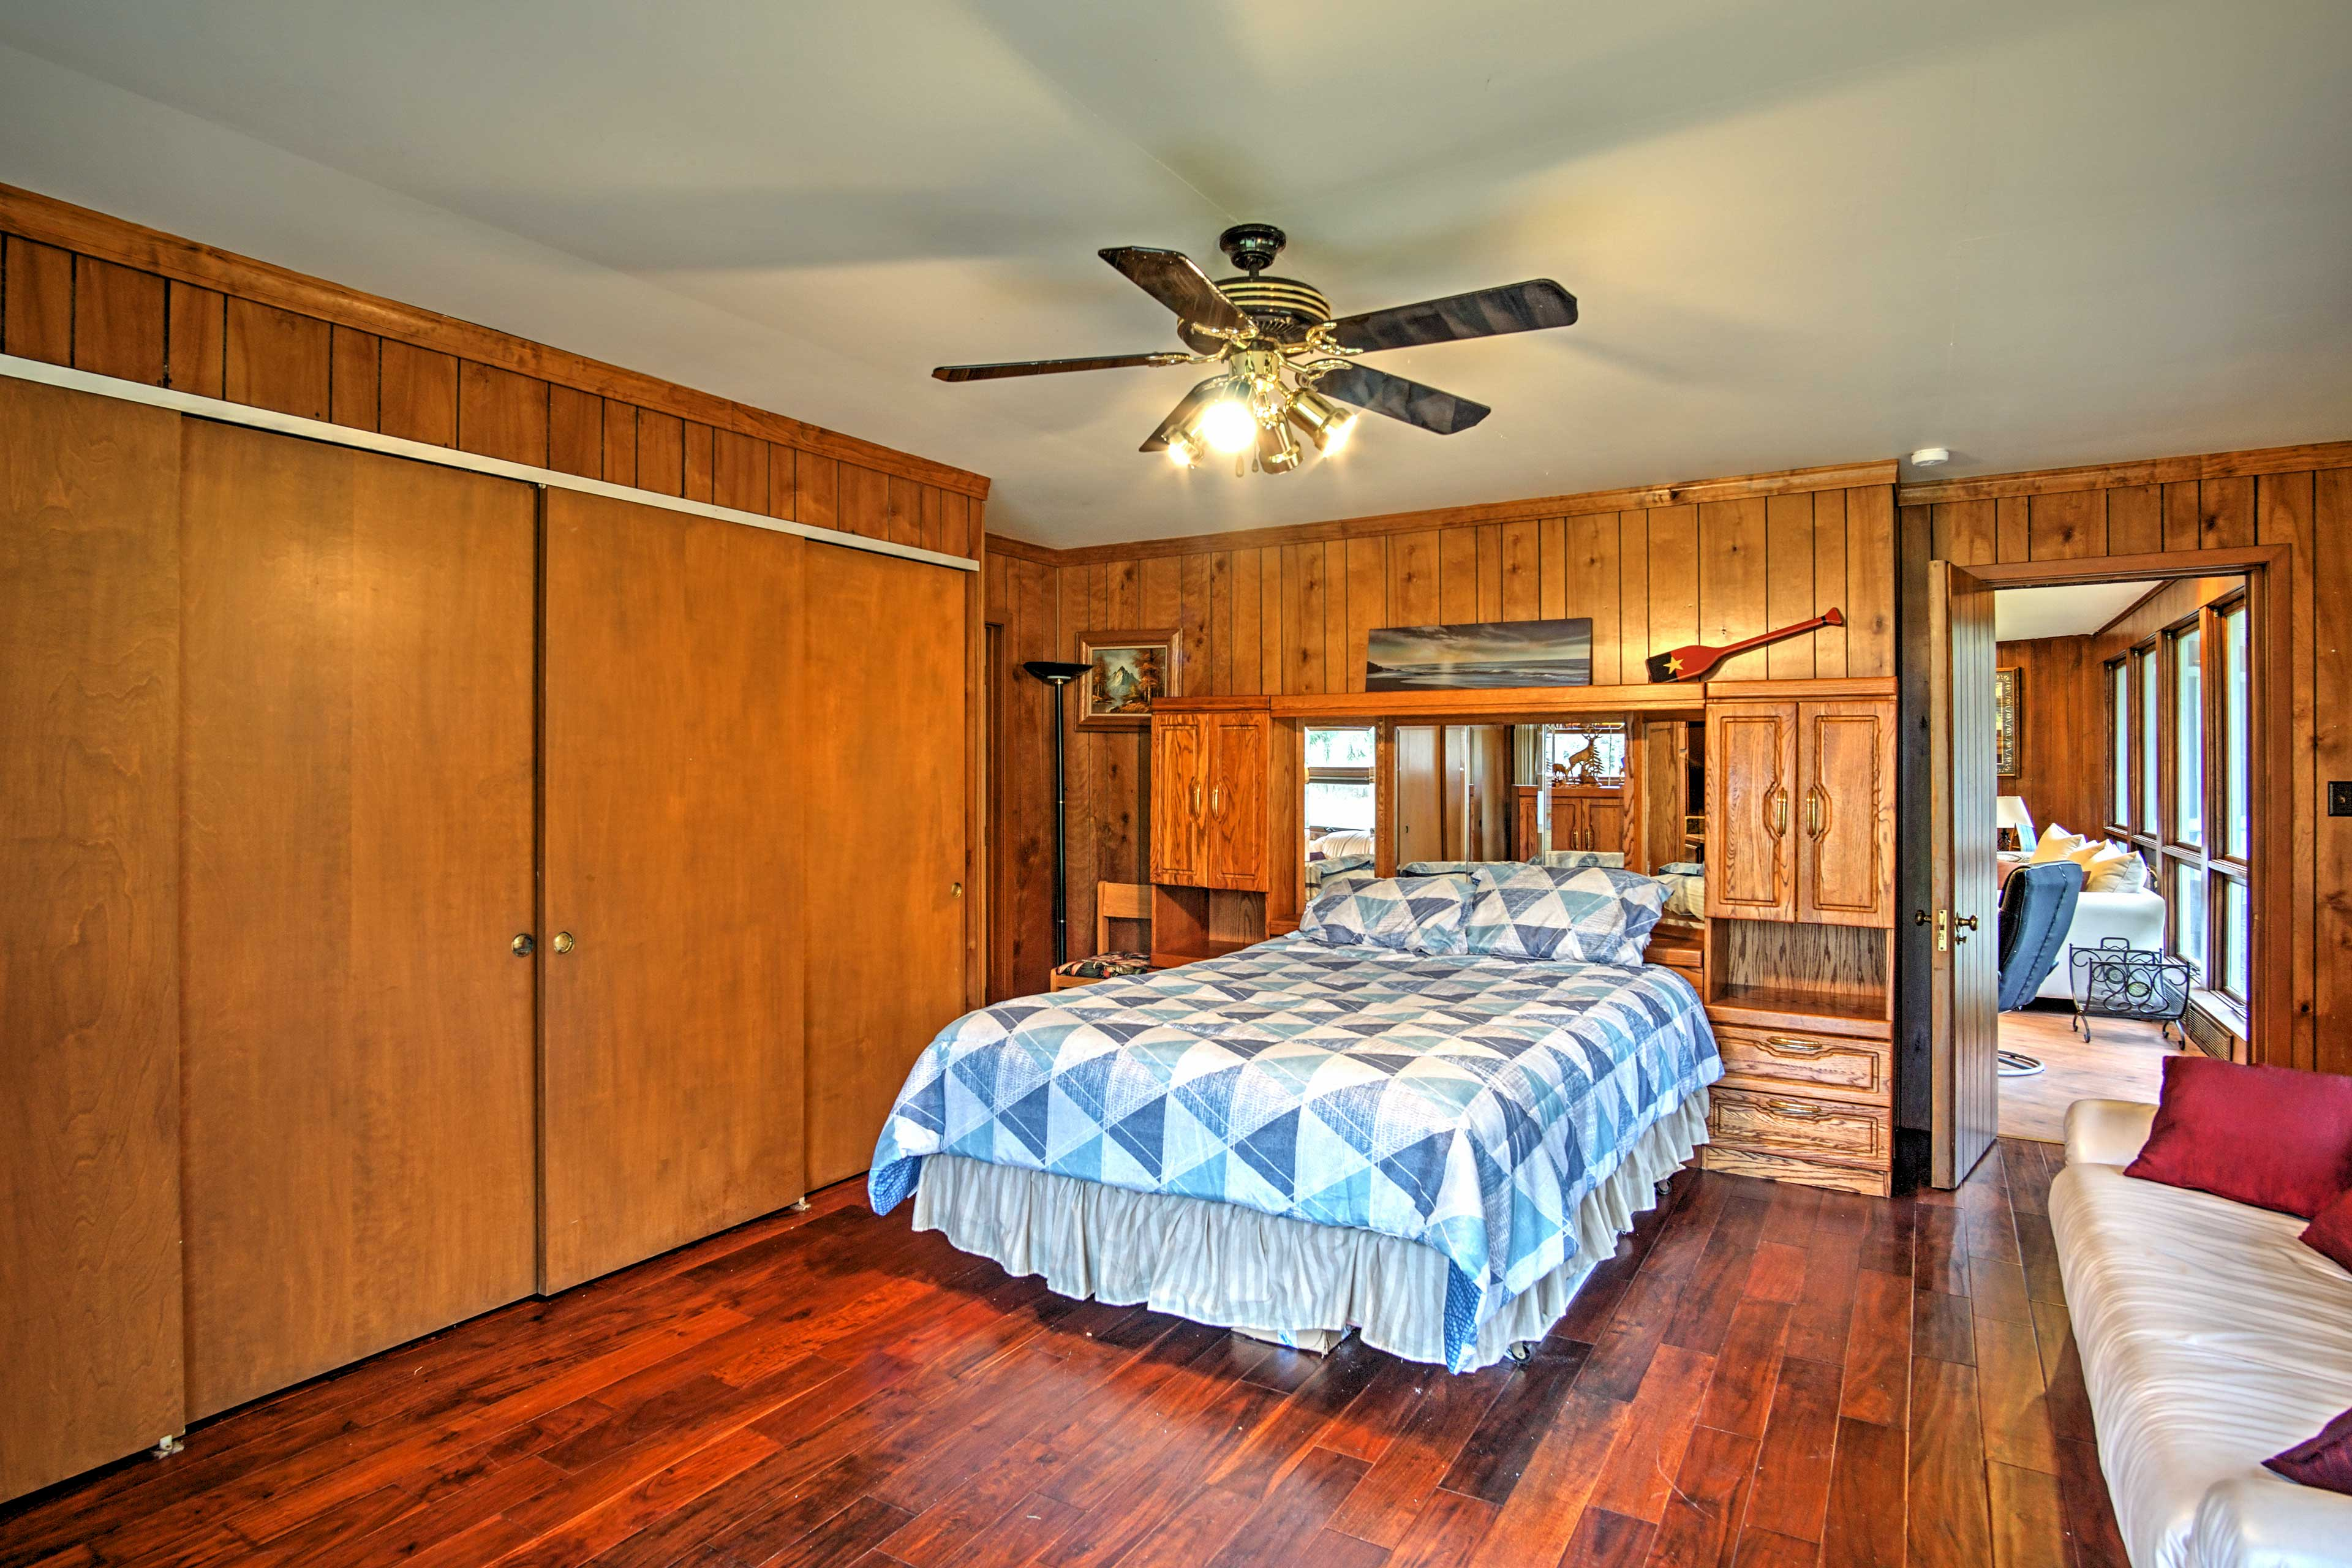 This wood-panneled bedroom offers rustic charm.